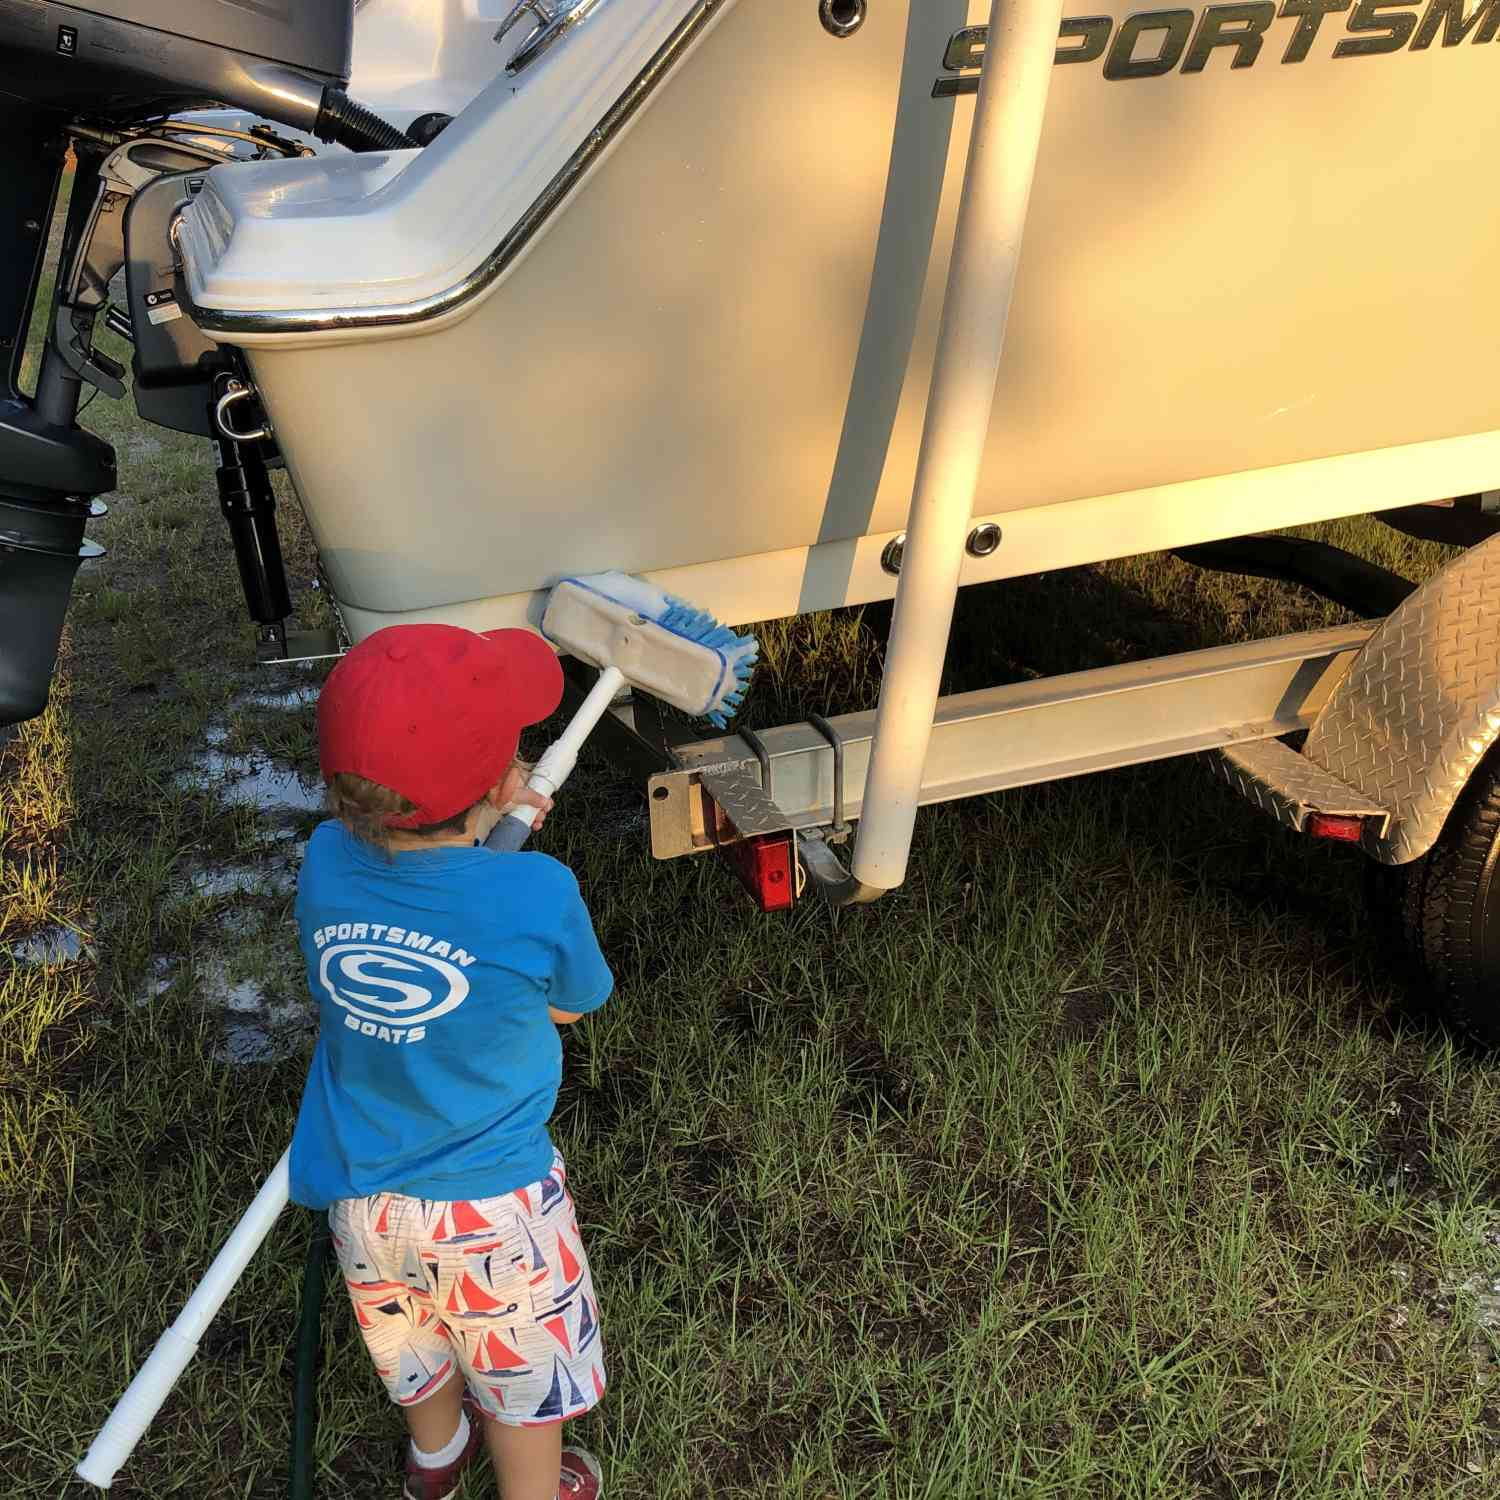 Title: Grandpa's First Mate - On board their Sportsman Open 212 Center Console - Location: Sullivan's Island, SC. Participating in the Photo Contest #SportsmanMay2019